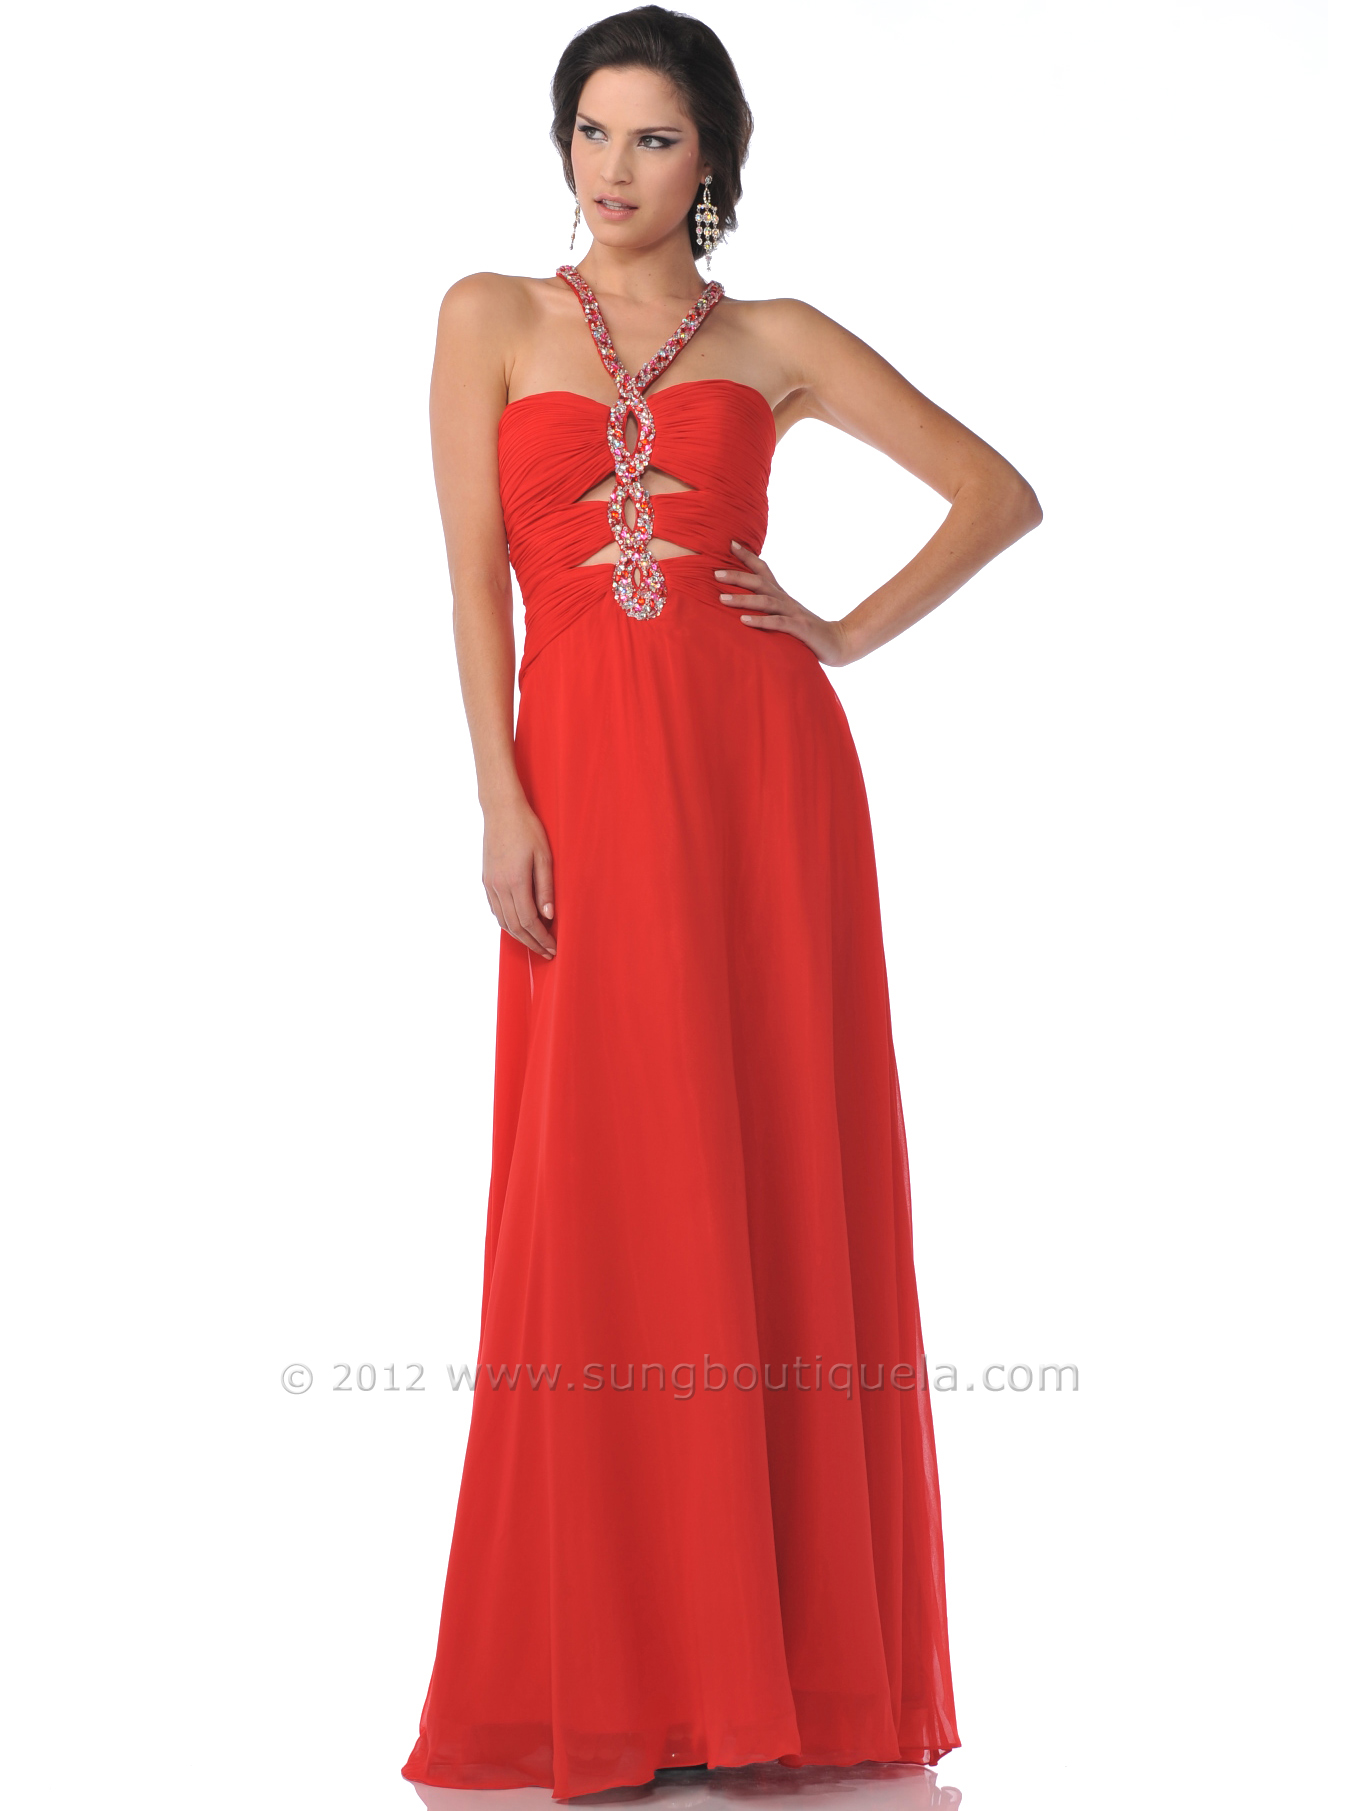 Red Halter Tops Prom Dresses - Prom Stores